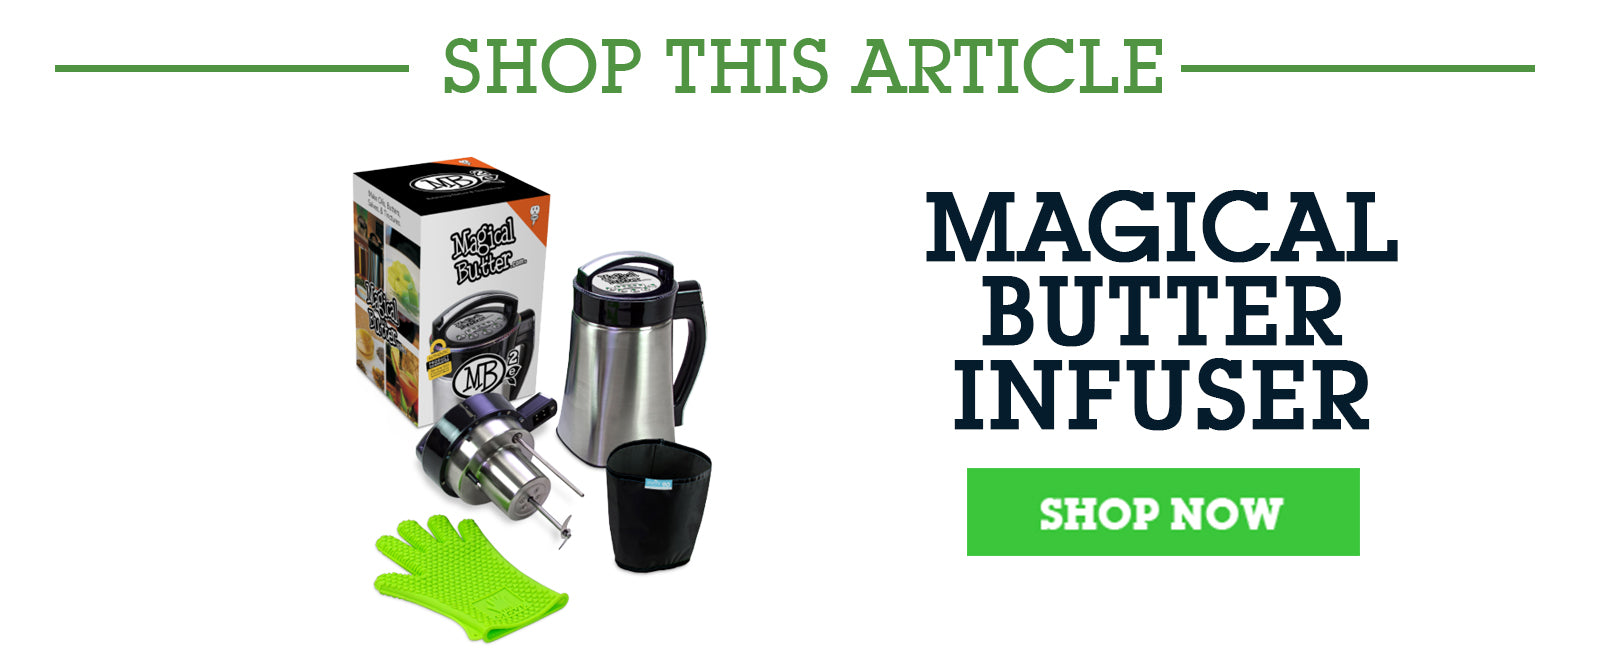 Magical Butter Infuser